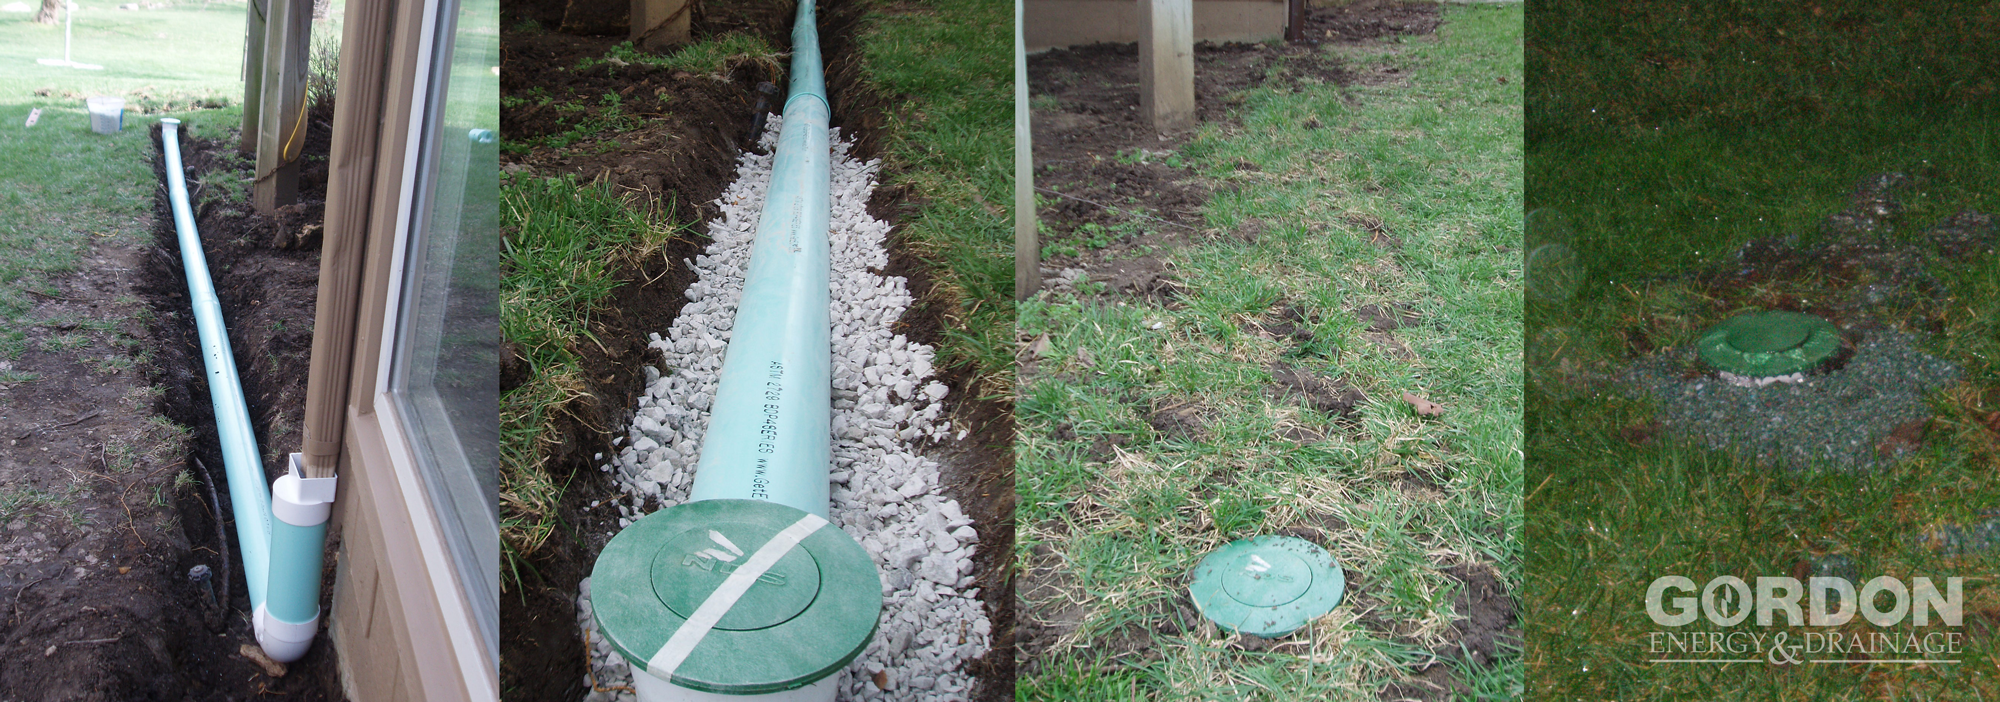 Very Downspout & Drain Extensions   Gordon Energy & Drainage QI13